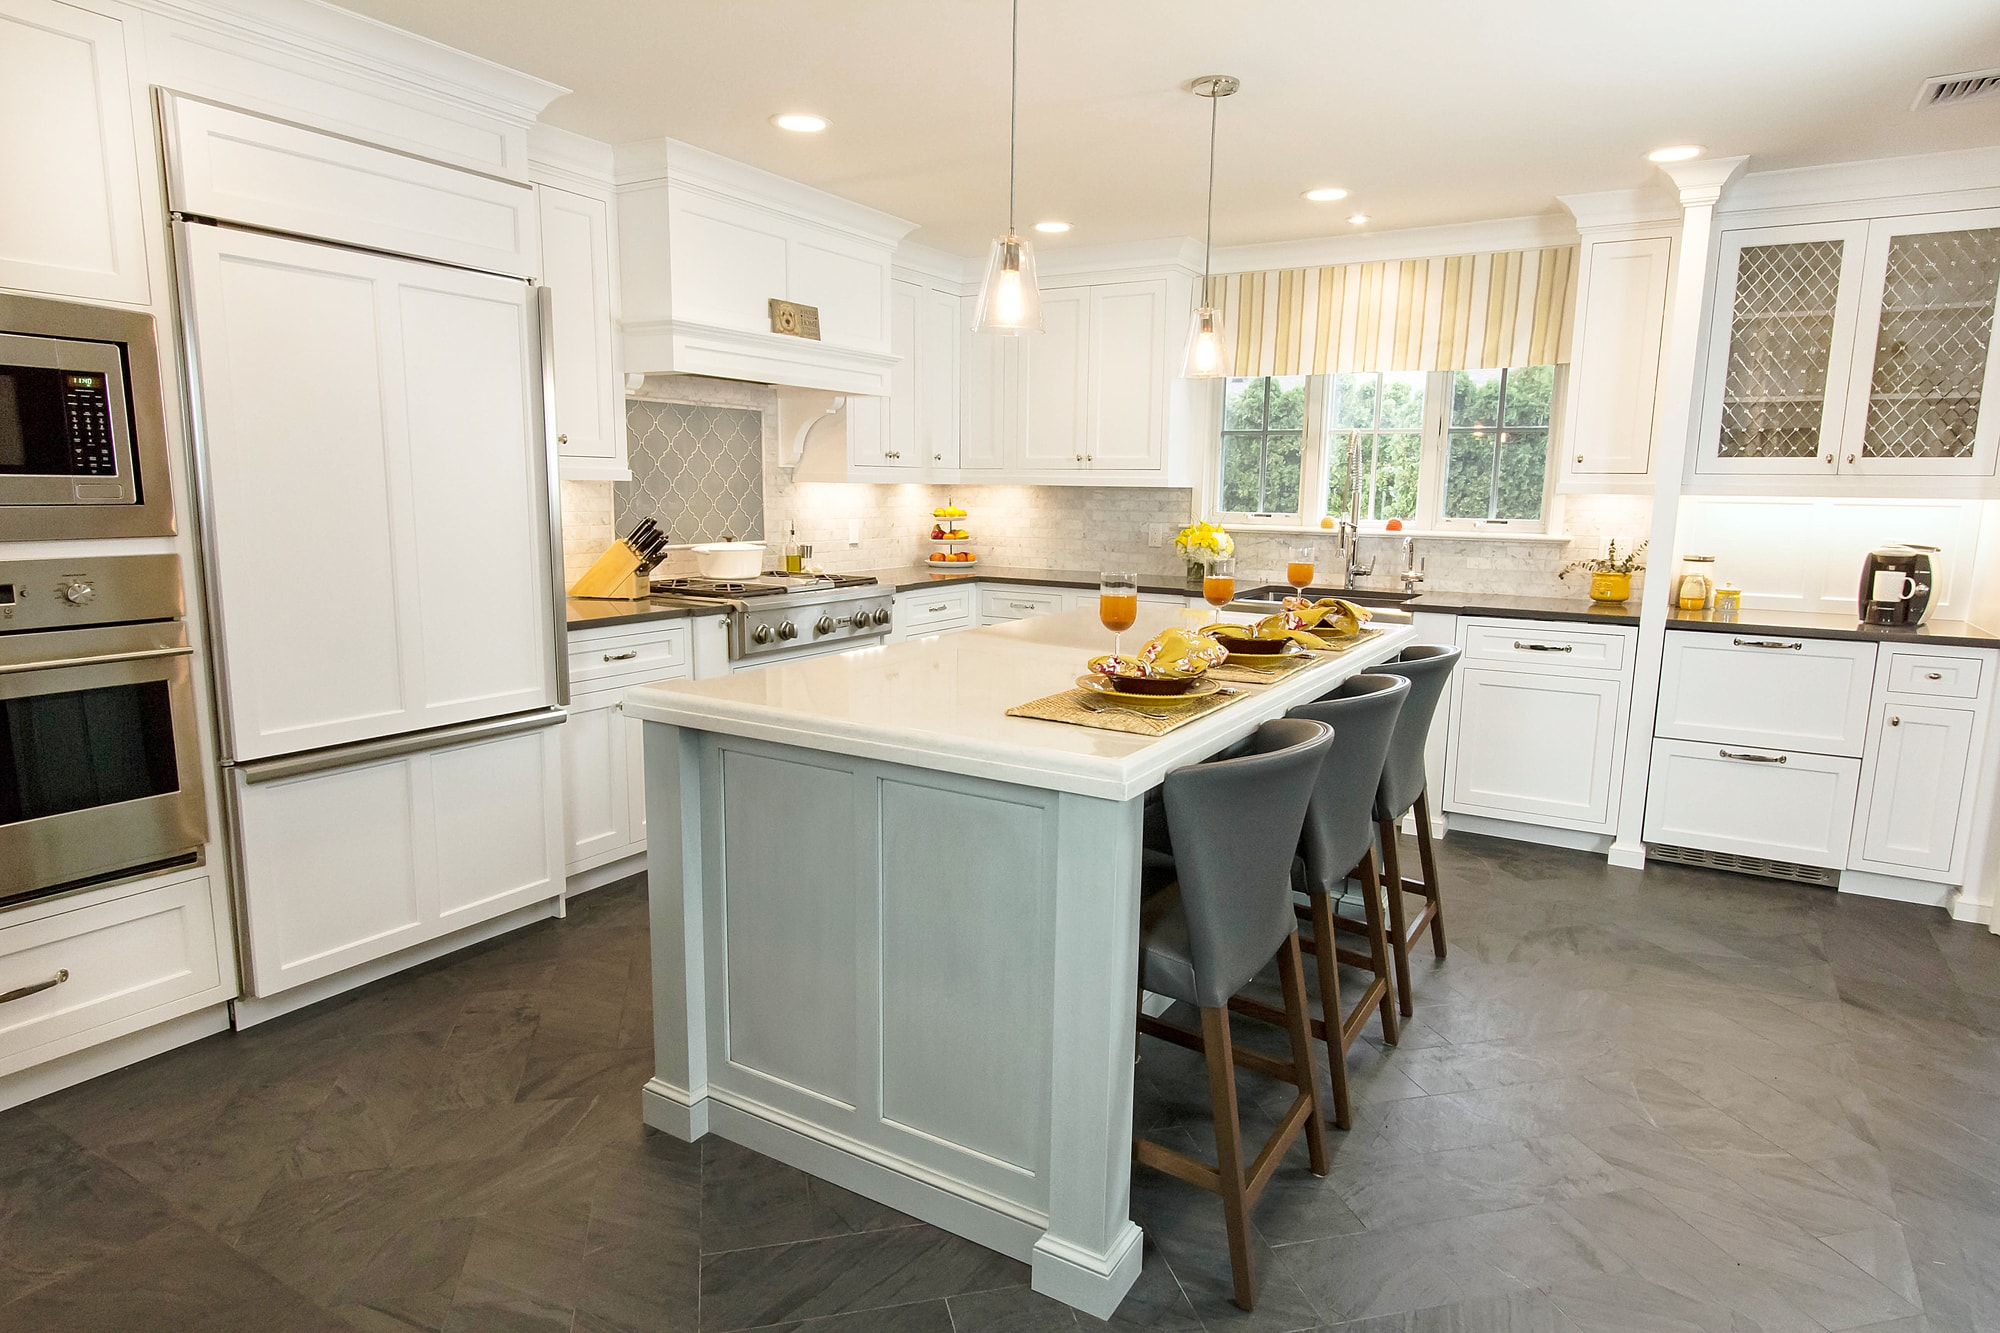 Traditional style kitchen with center kitchen island